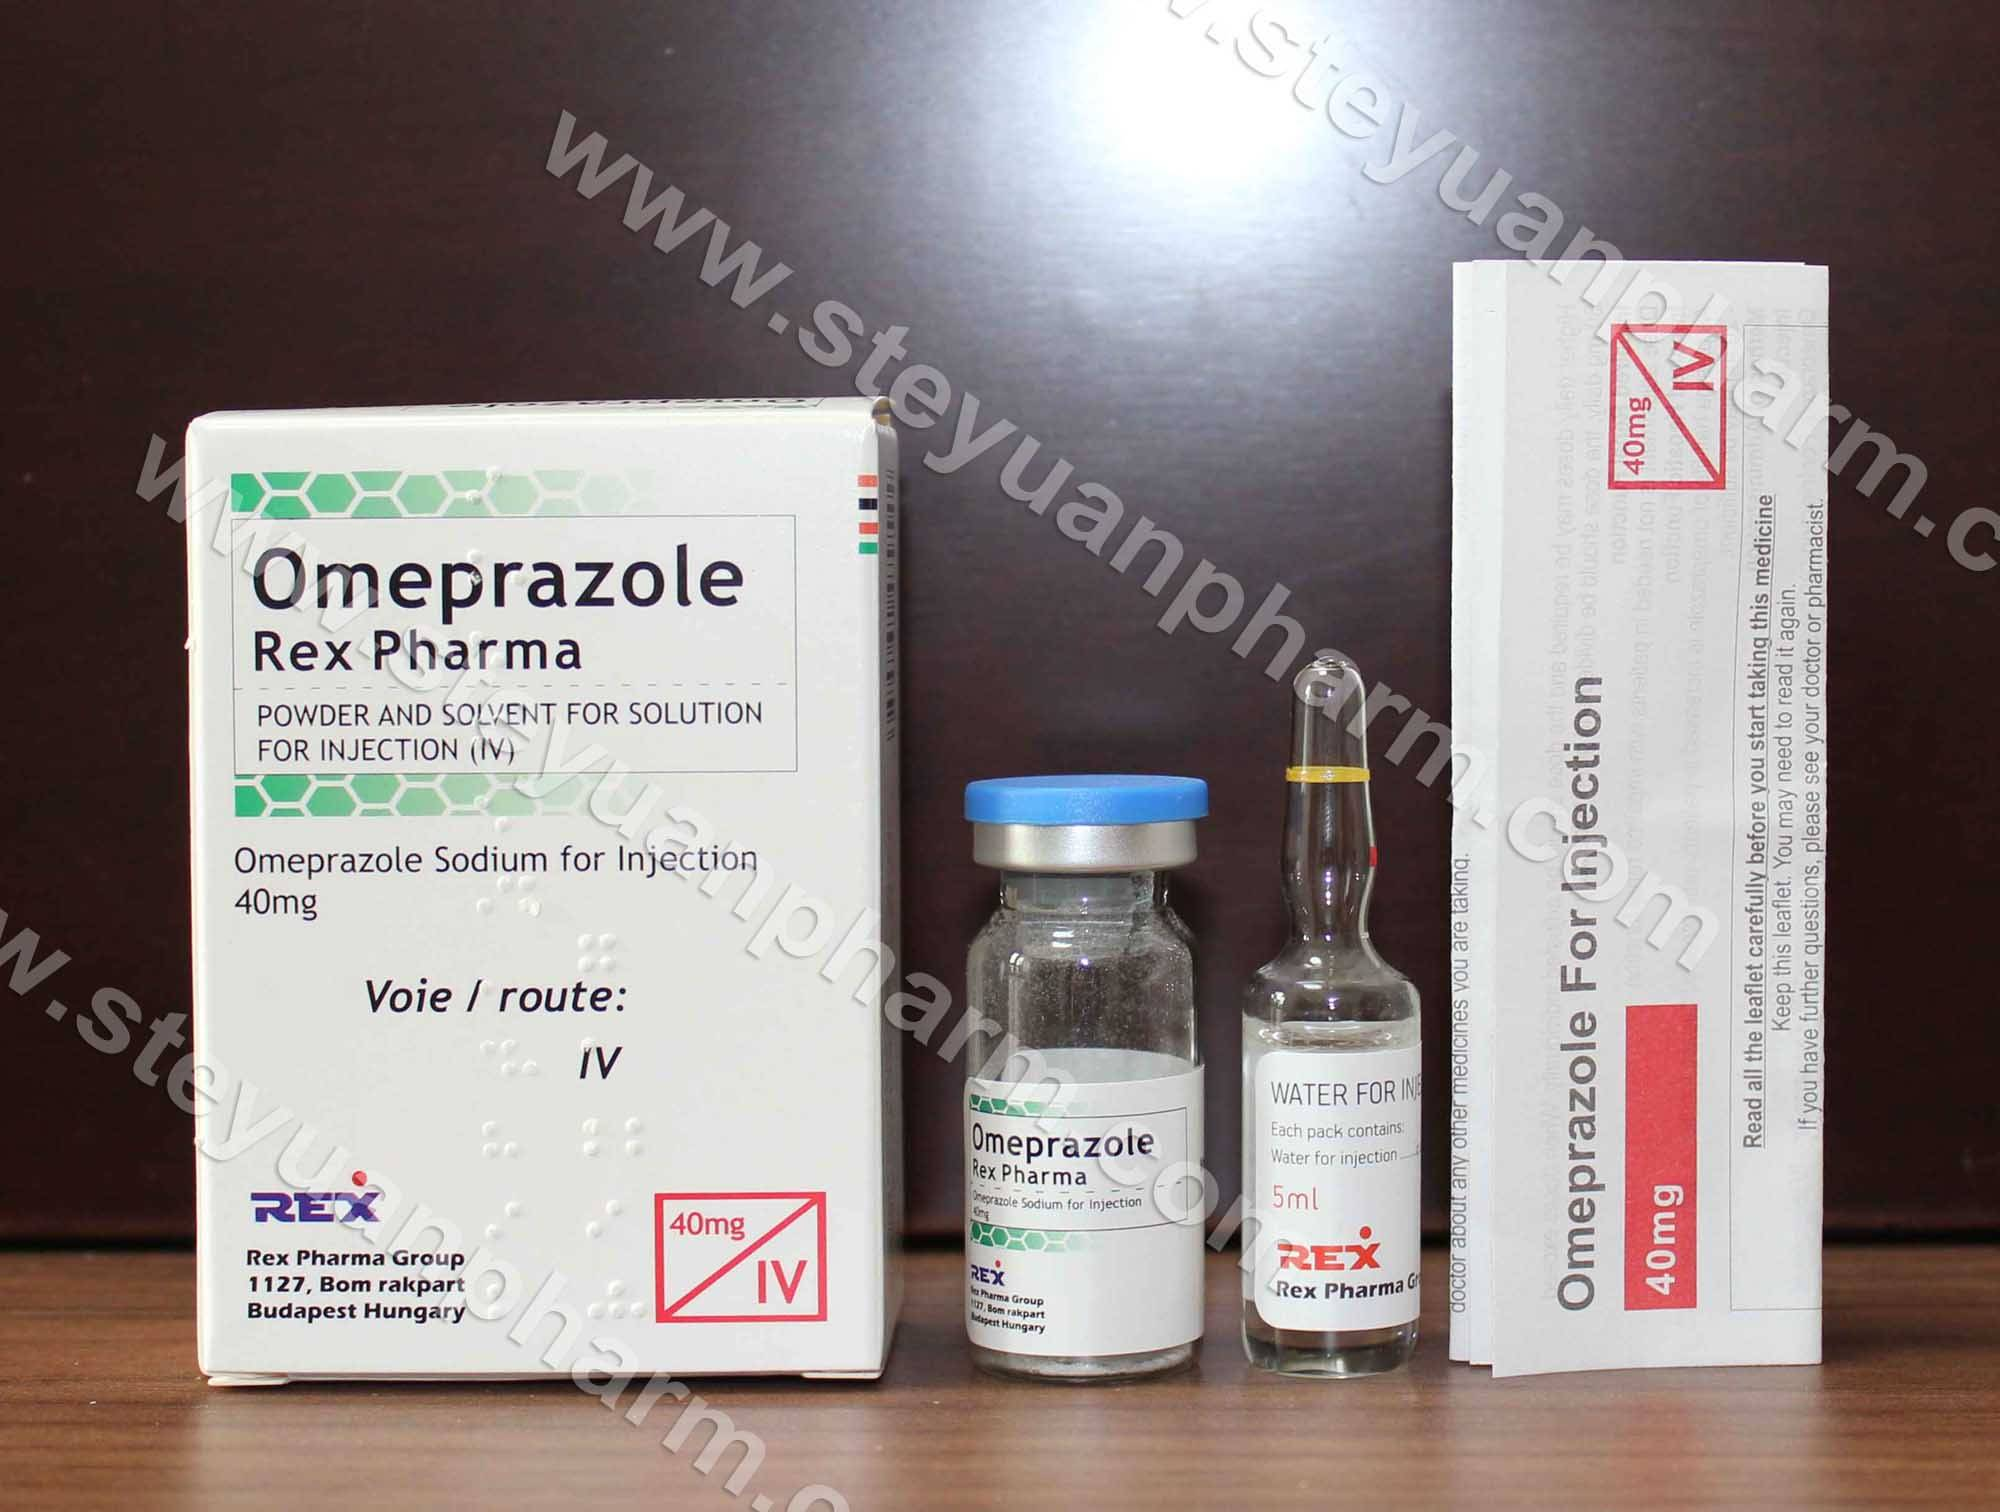 Omeprazole for injection